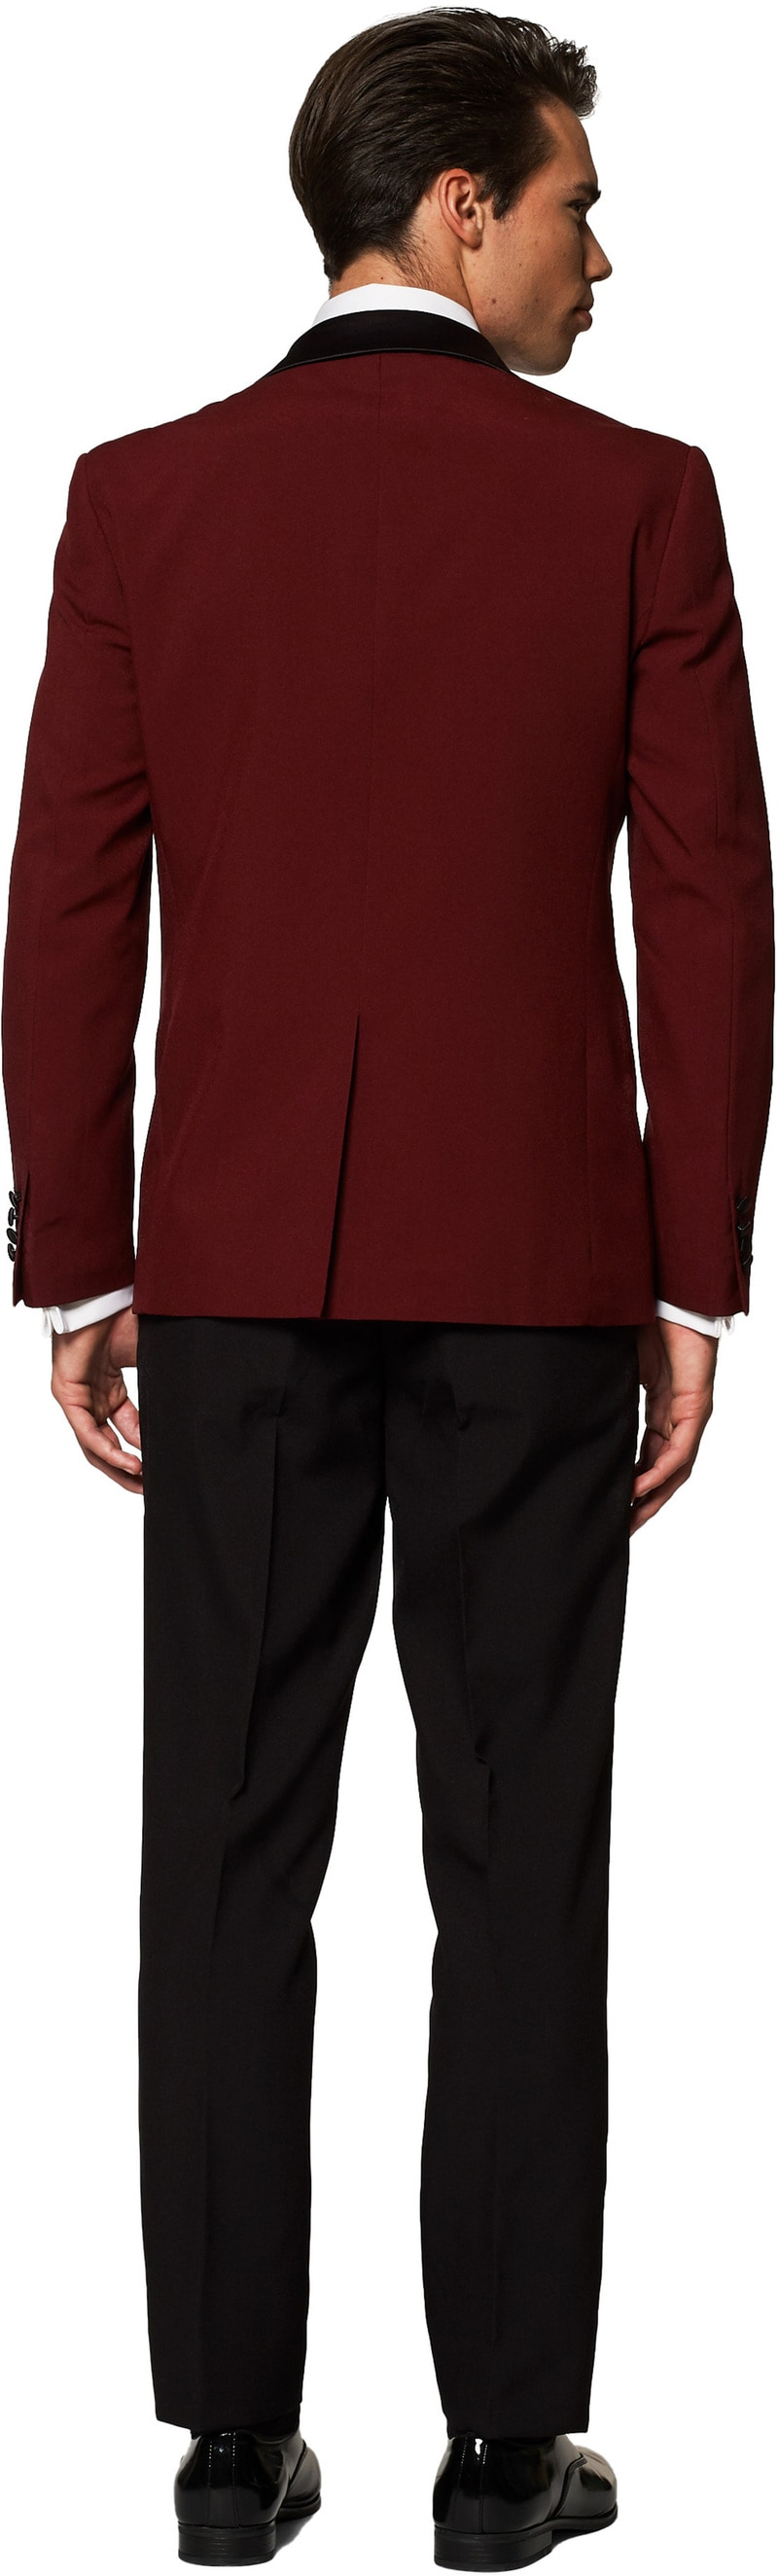 OppoSuits Smoking Hot Burgundy foto 1